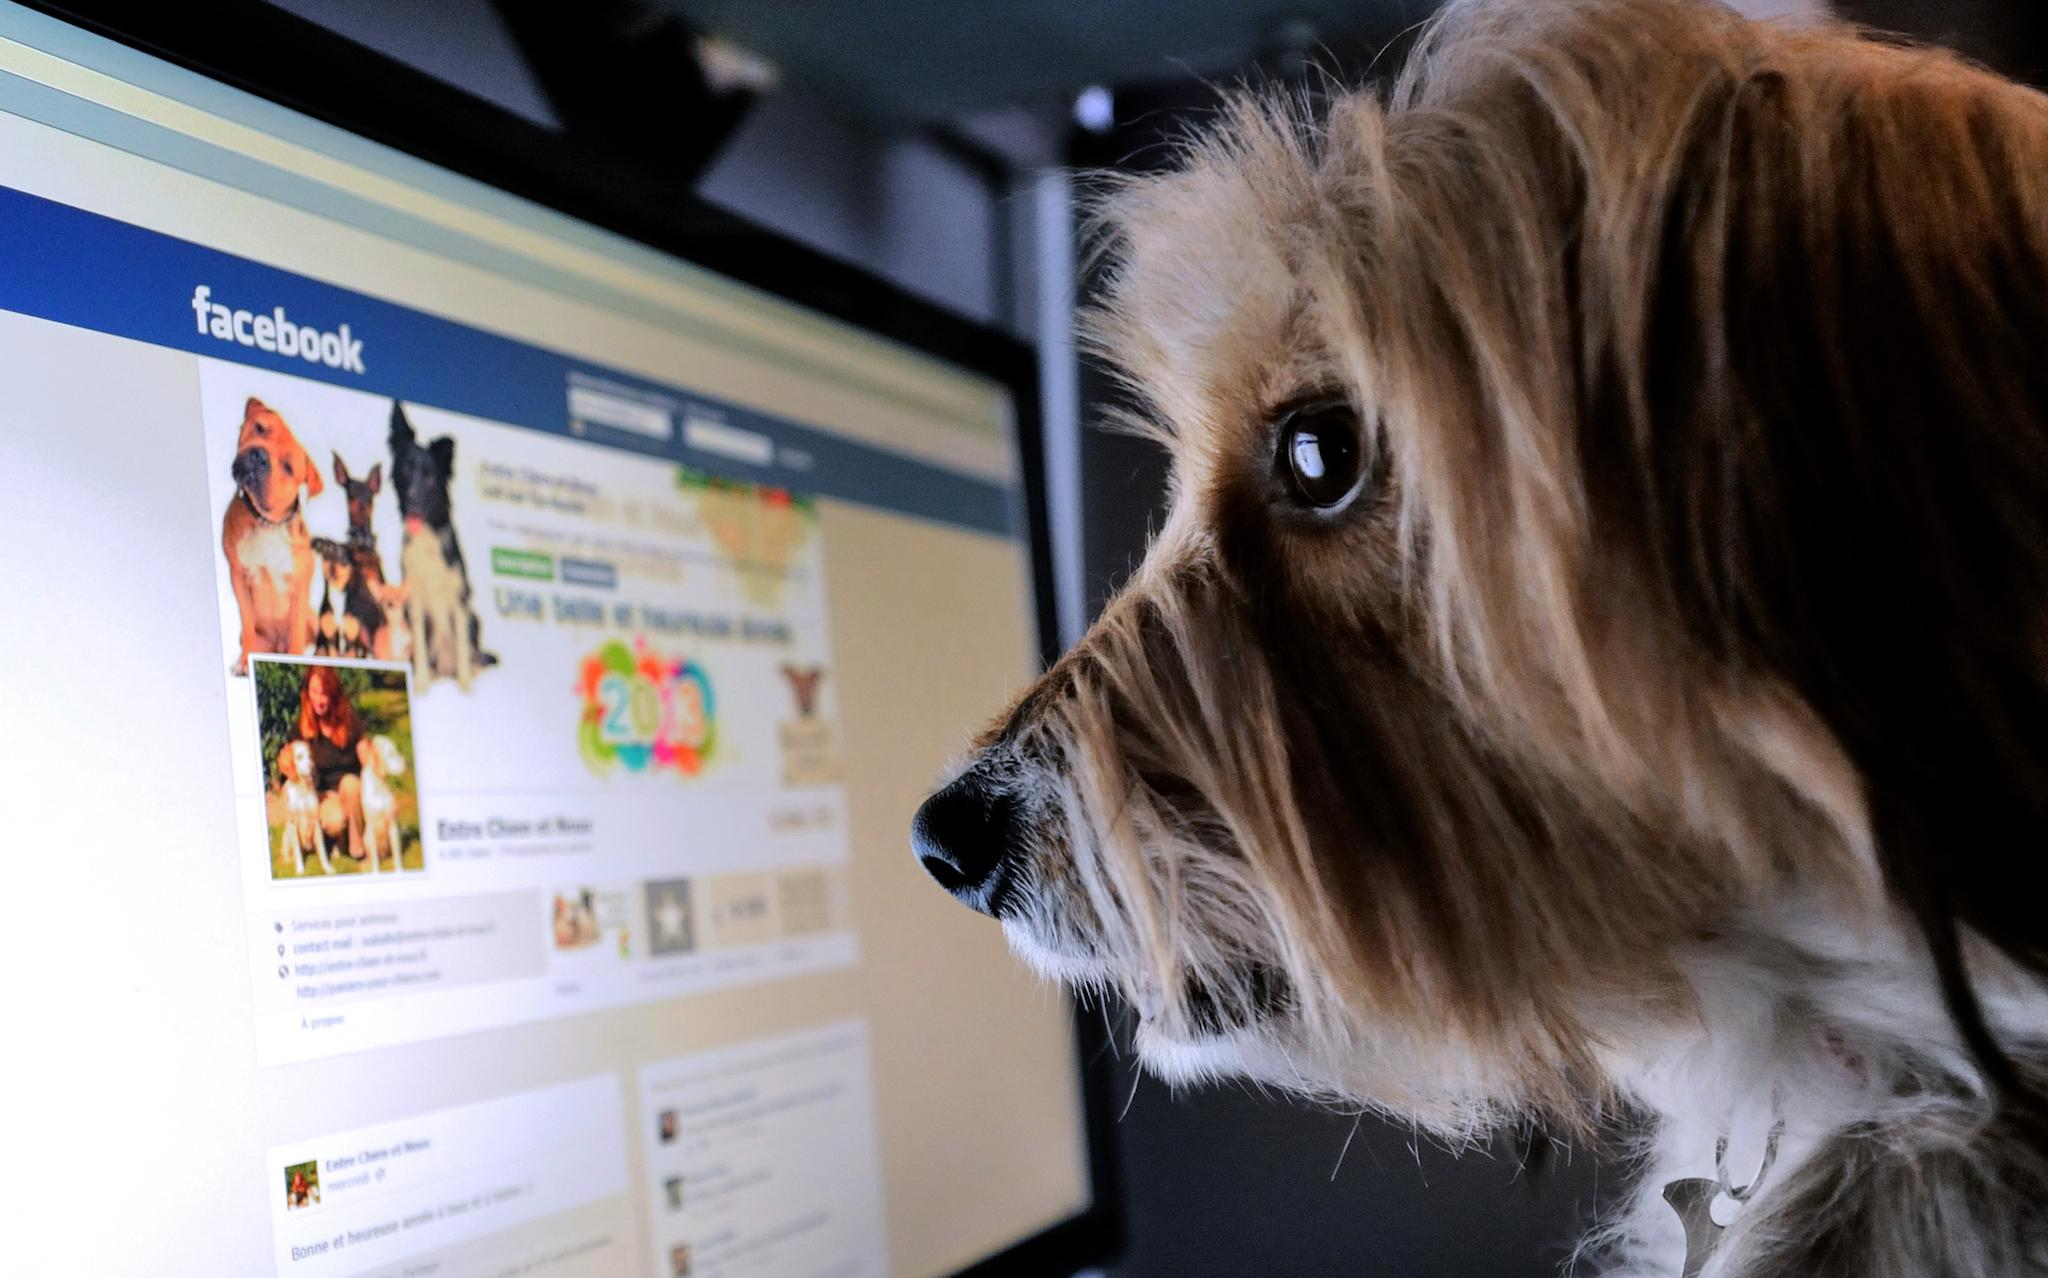 Facebook Likes Don't Make People any Less Miserable, Study Confirms